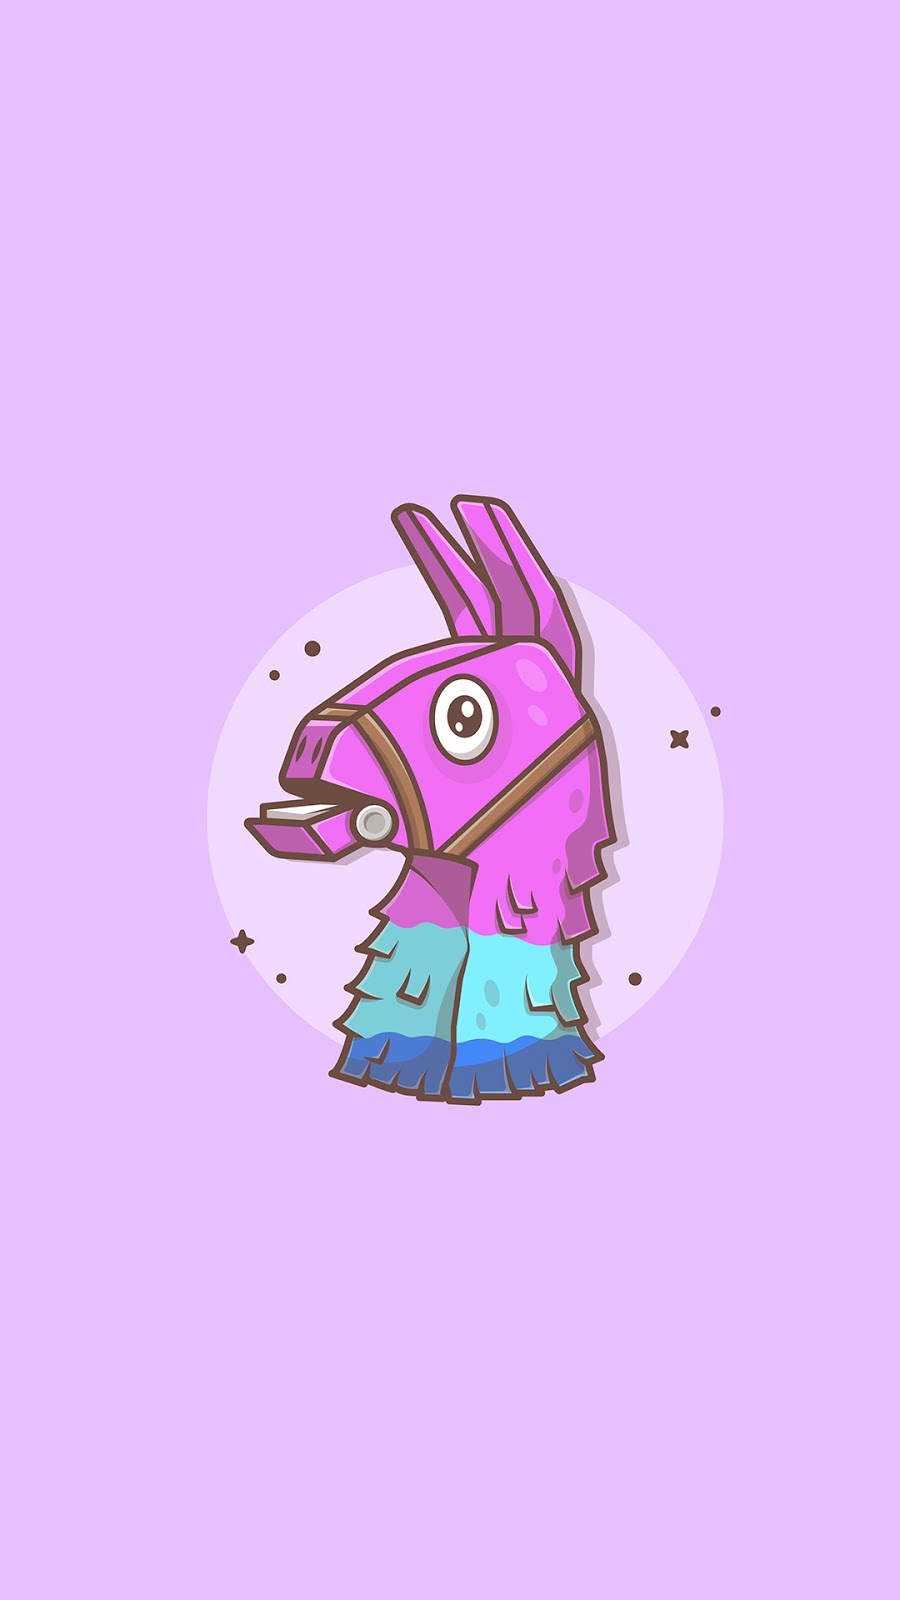 Fortnite Jumbo Llama Loot Pinata Heroscreen Cool Wallpapers